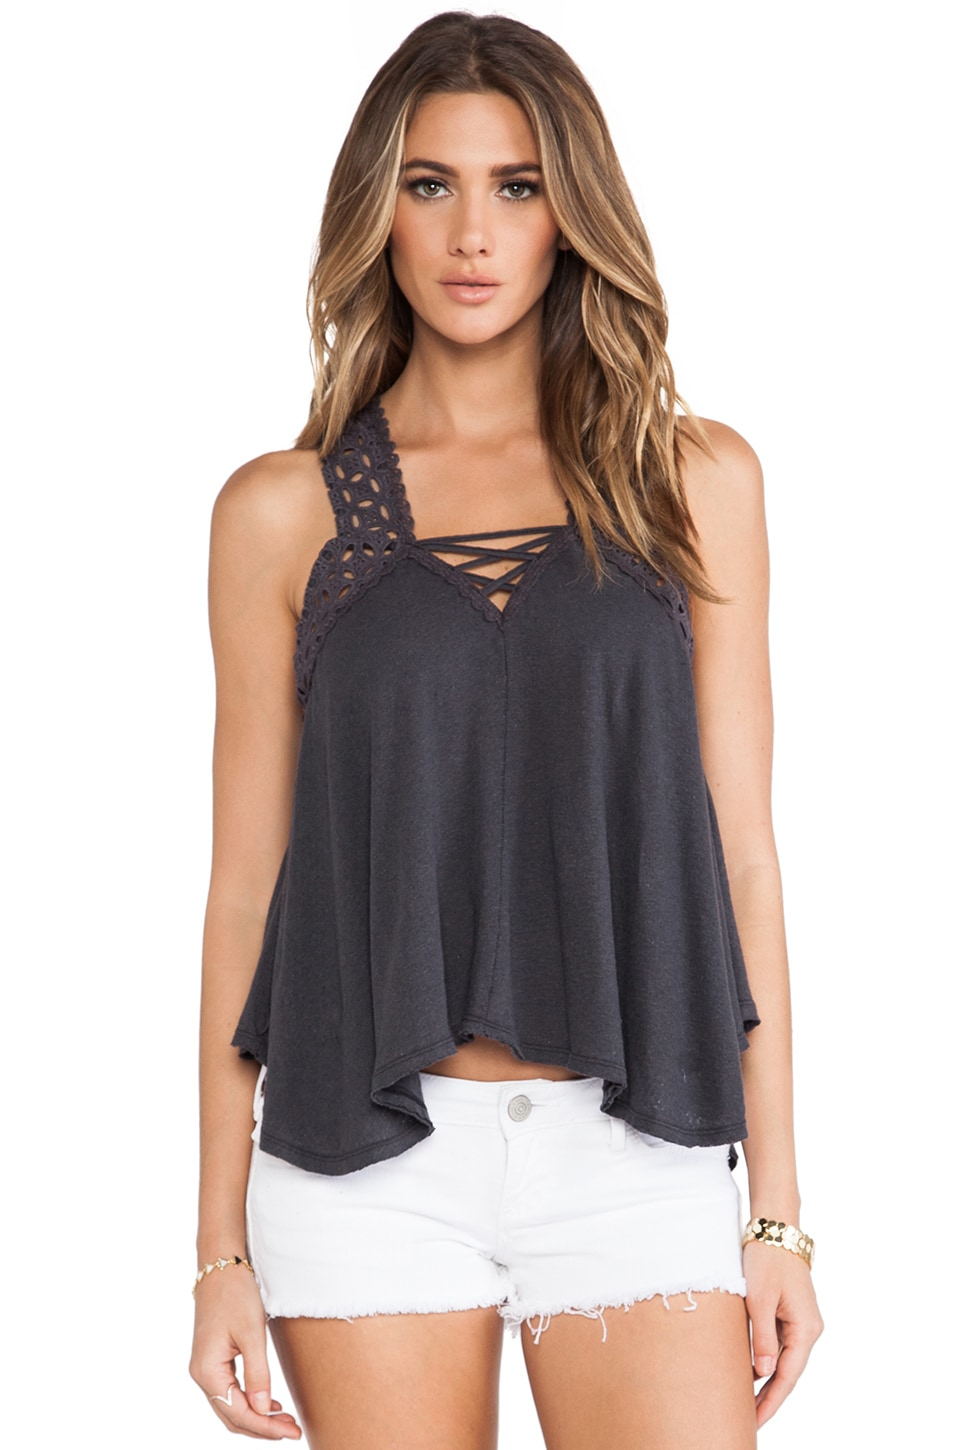 Free People Runa Round Eyelet Top in Charcoal